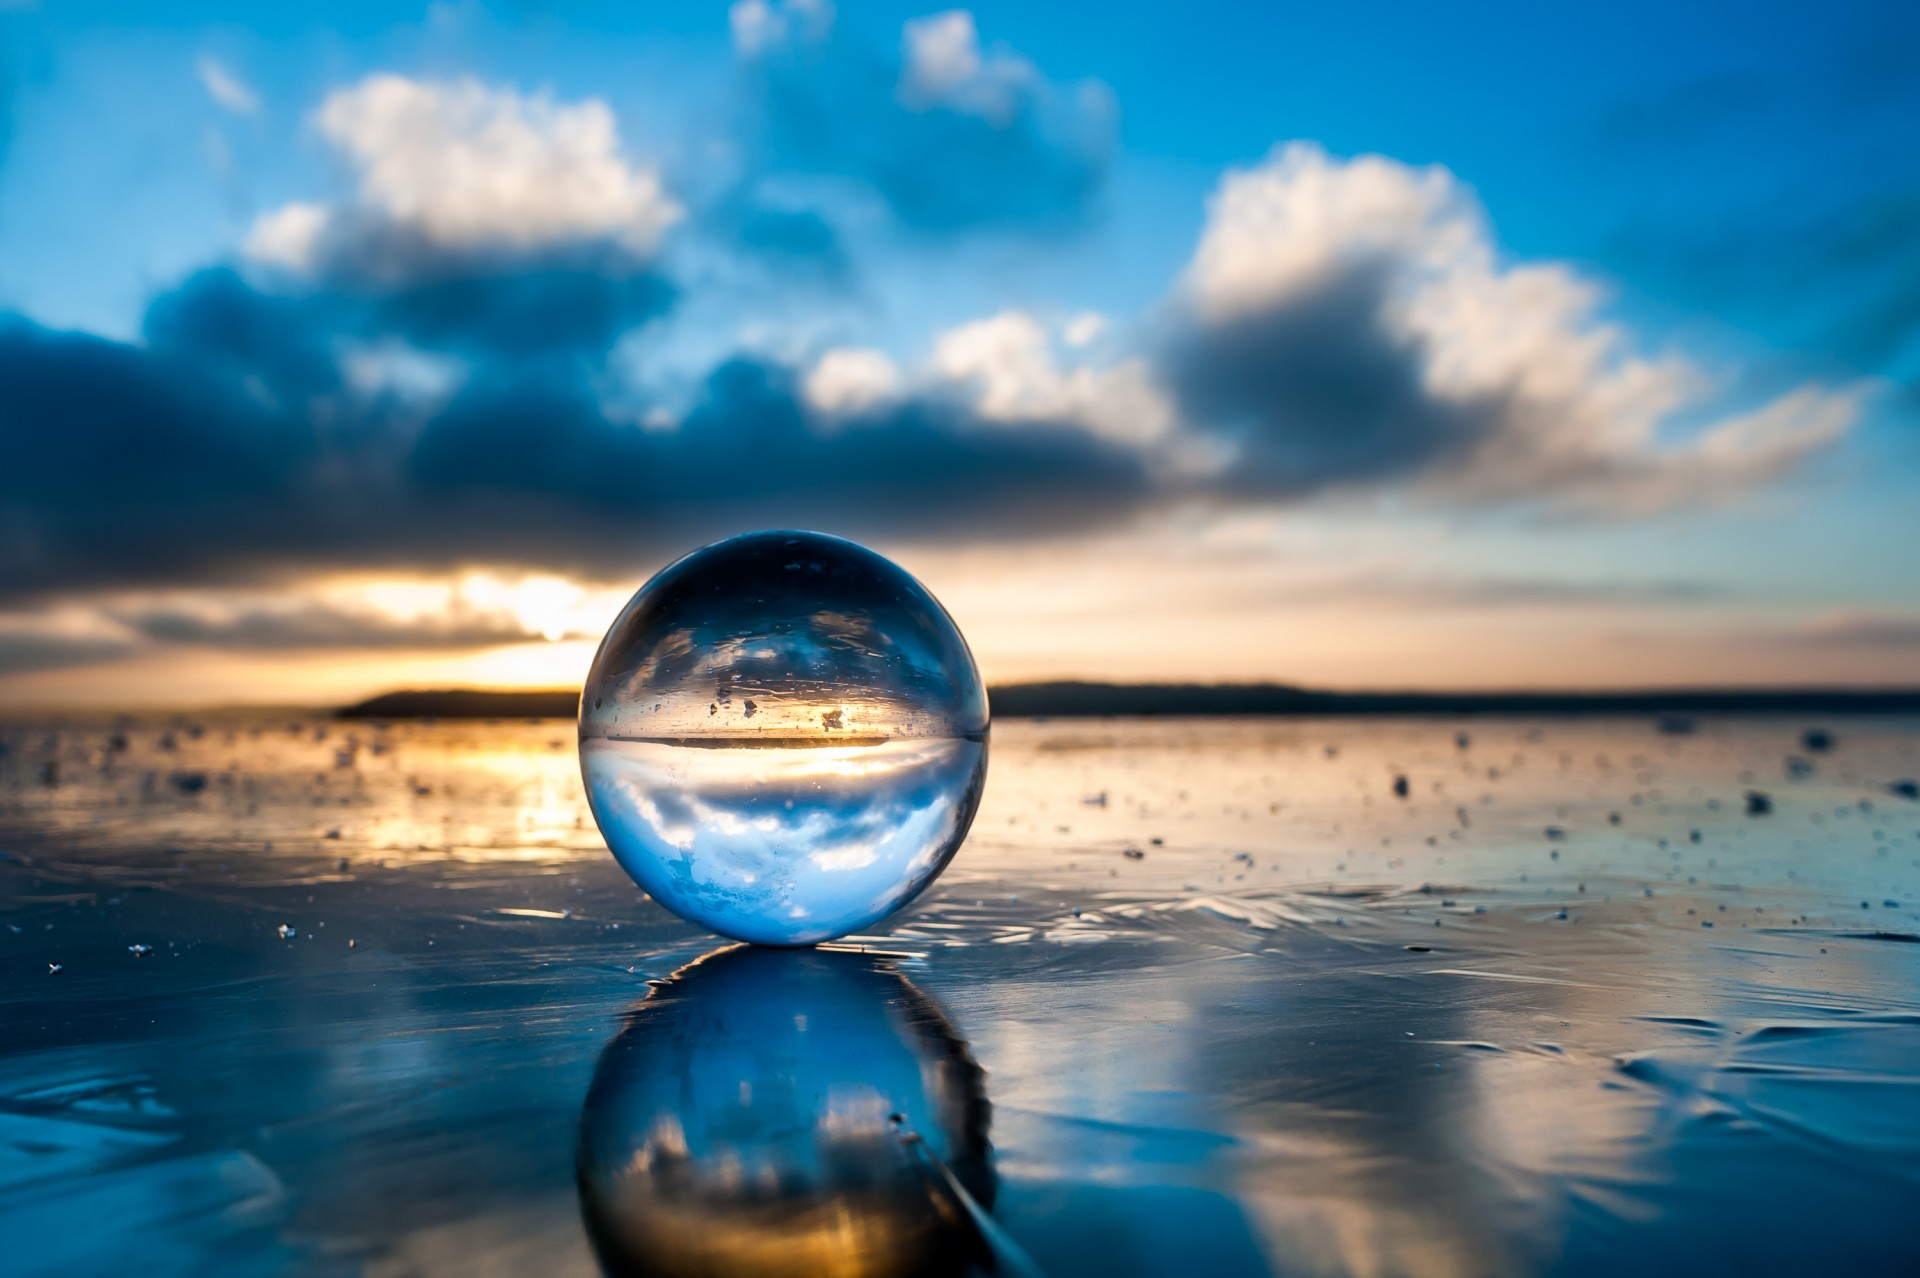 Glass_Ball_Project_074-1920x1278